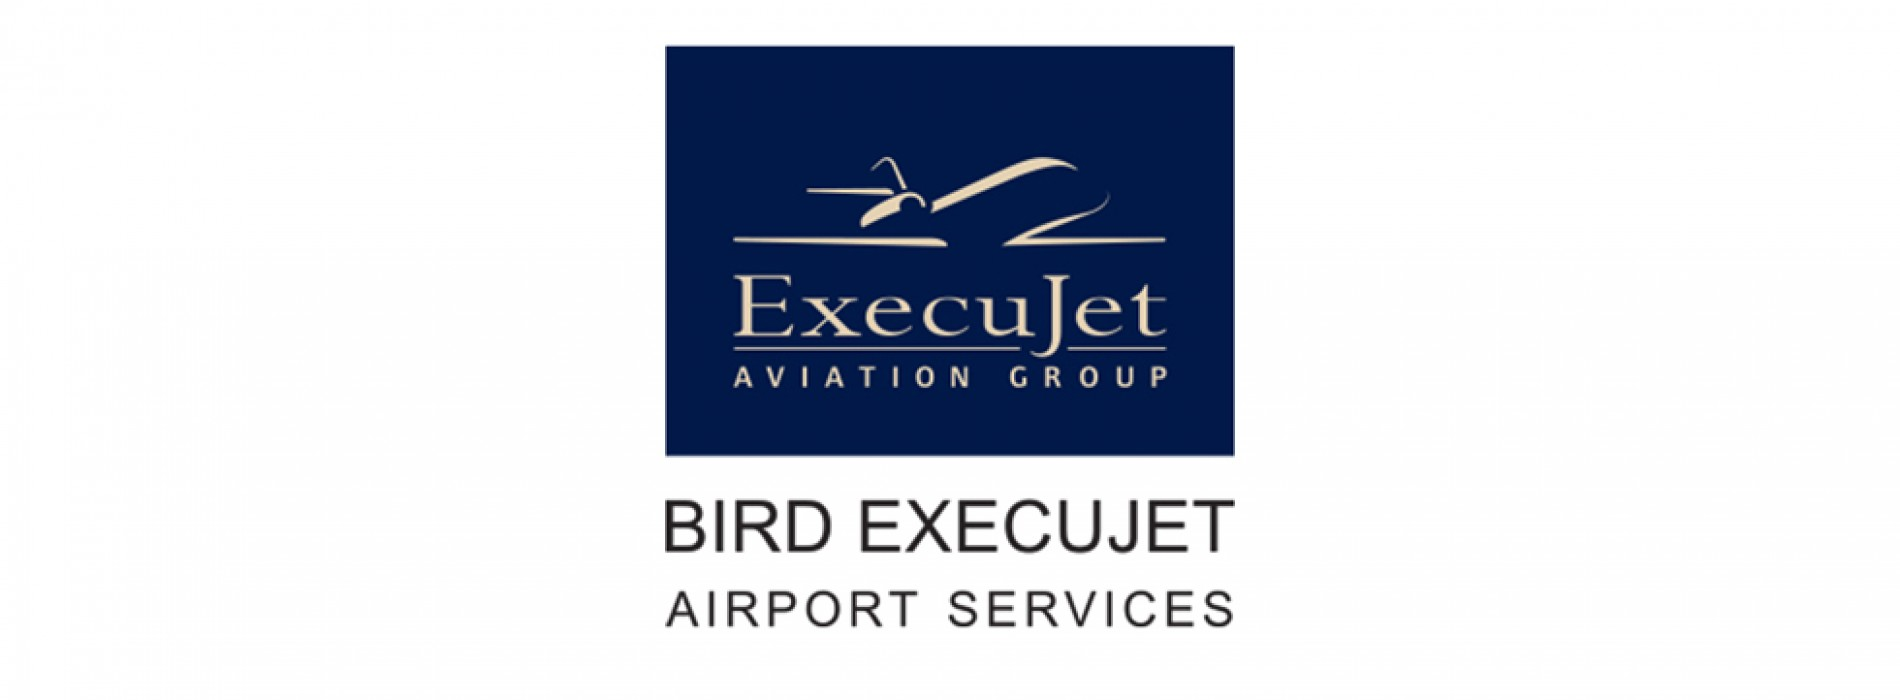 Bird ExecuJet appointed as an authorized Aeroshell Distributor in India